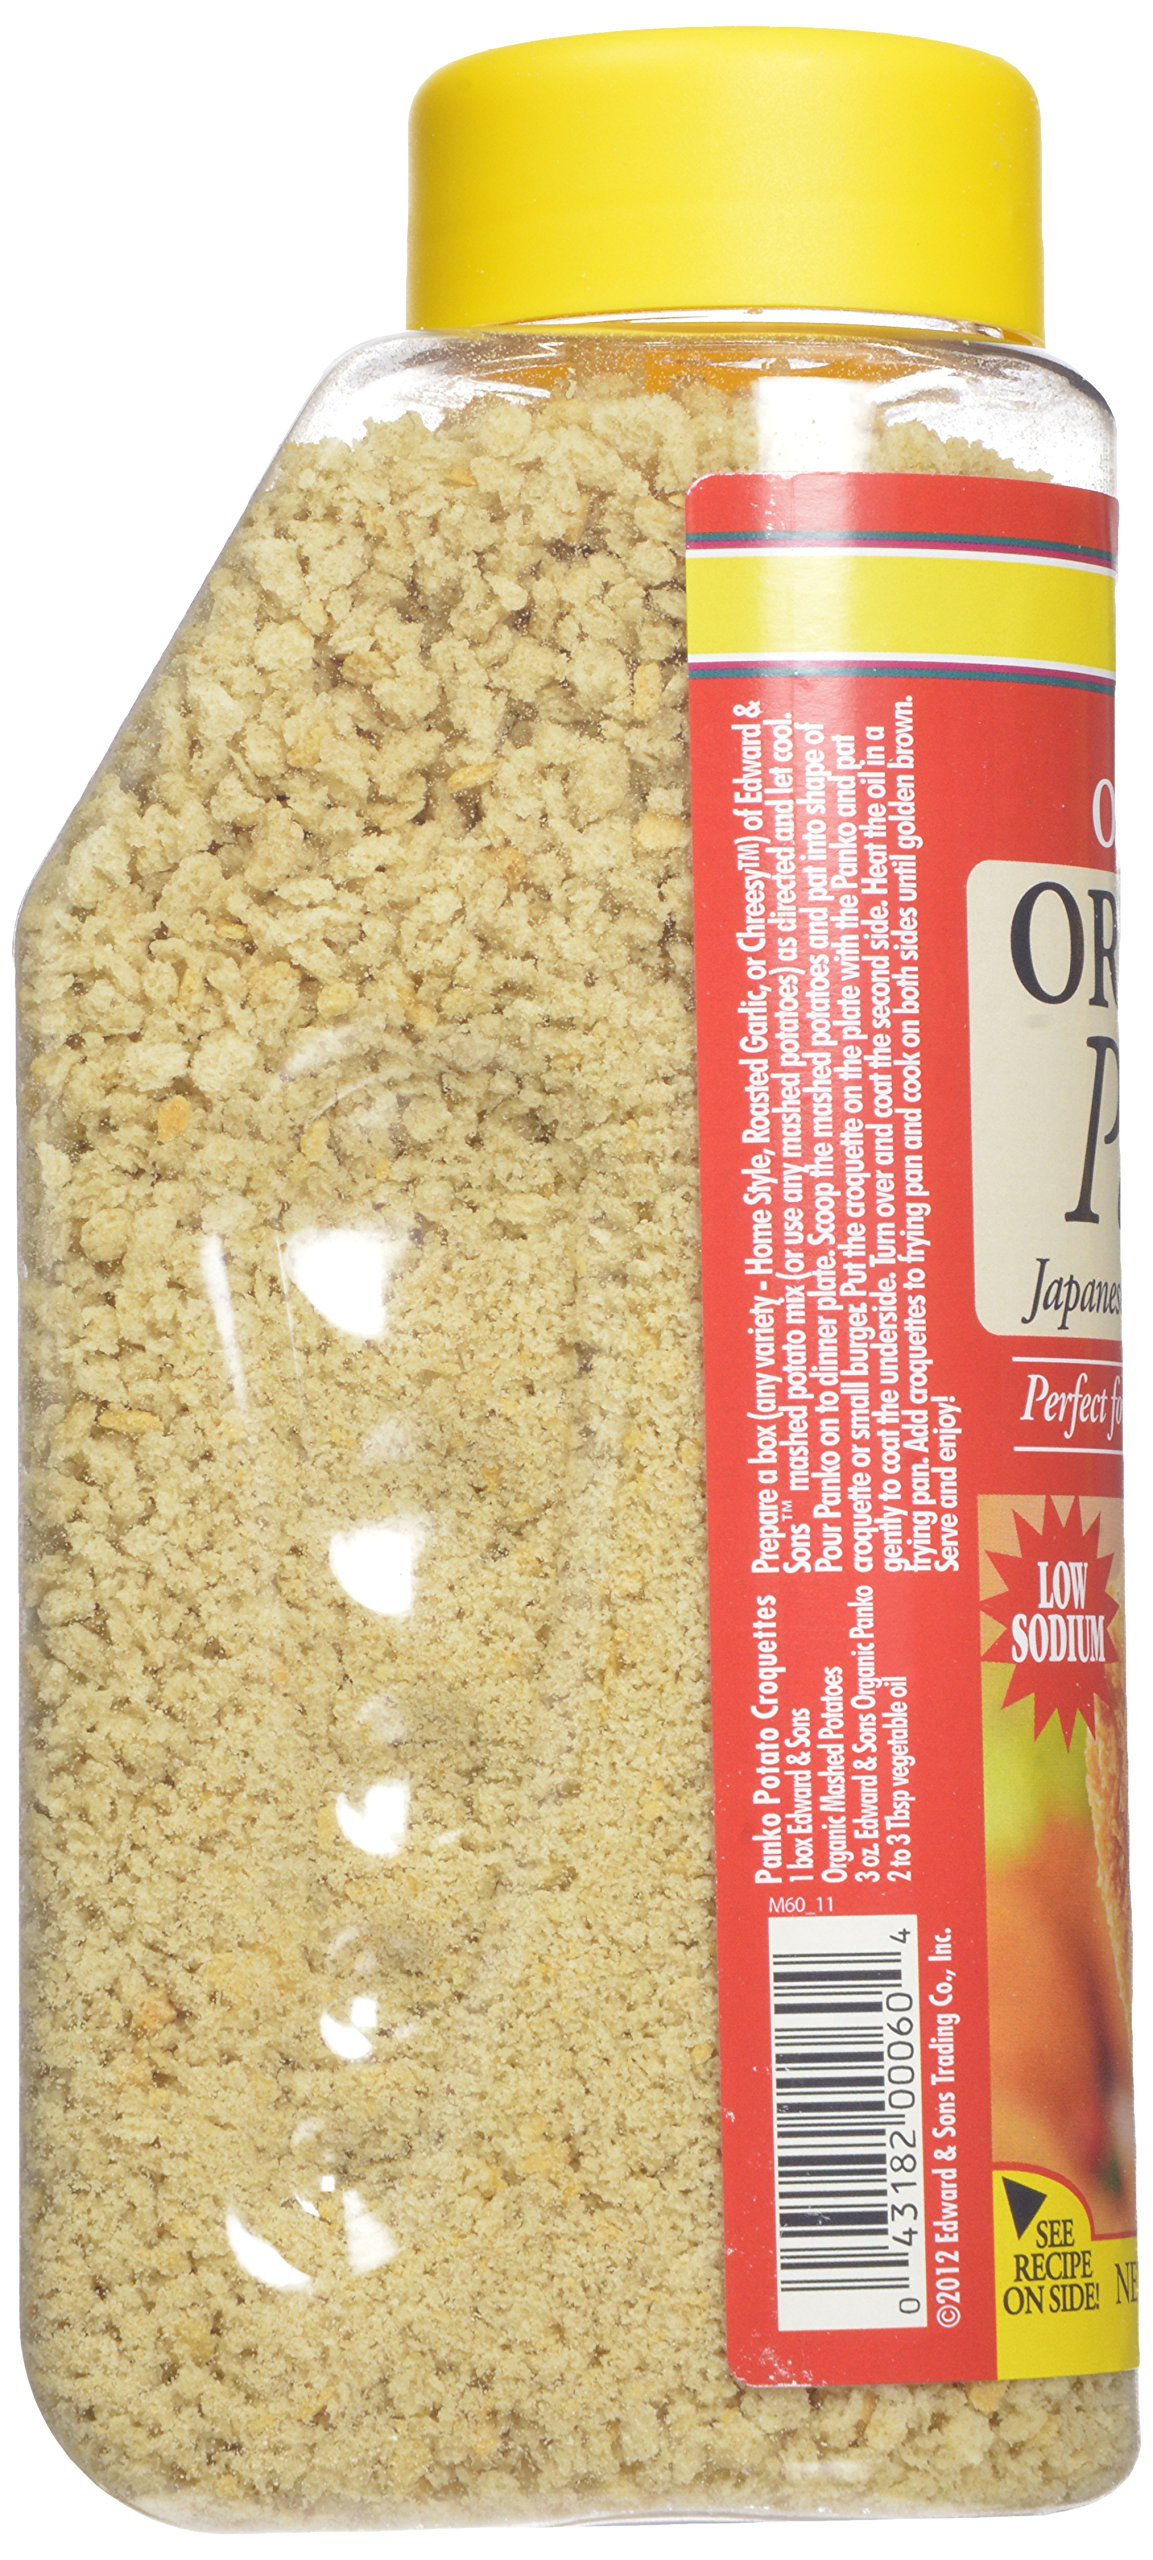 Edward & Sons Organic Panko, Japanese Style Breadcrumbs, 10.5-Ounce Canisters (Pack of 6) by Edward & Sons (Image #5)